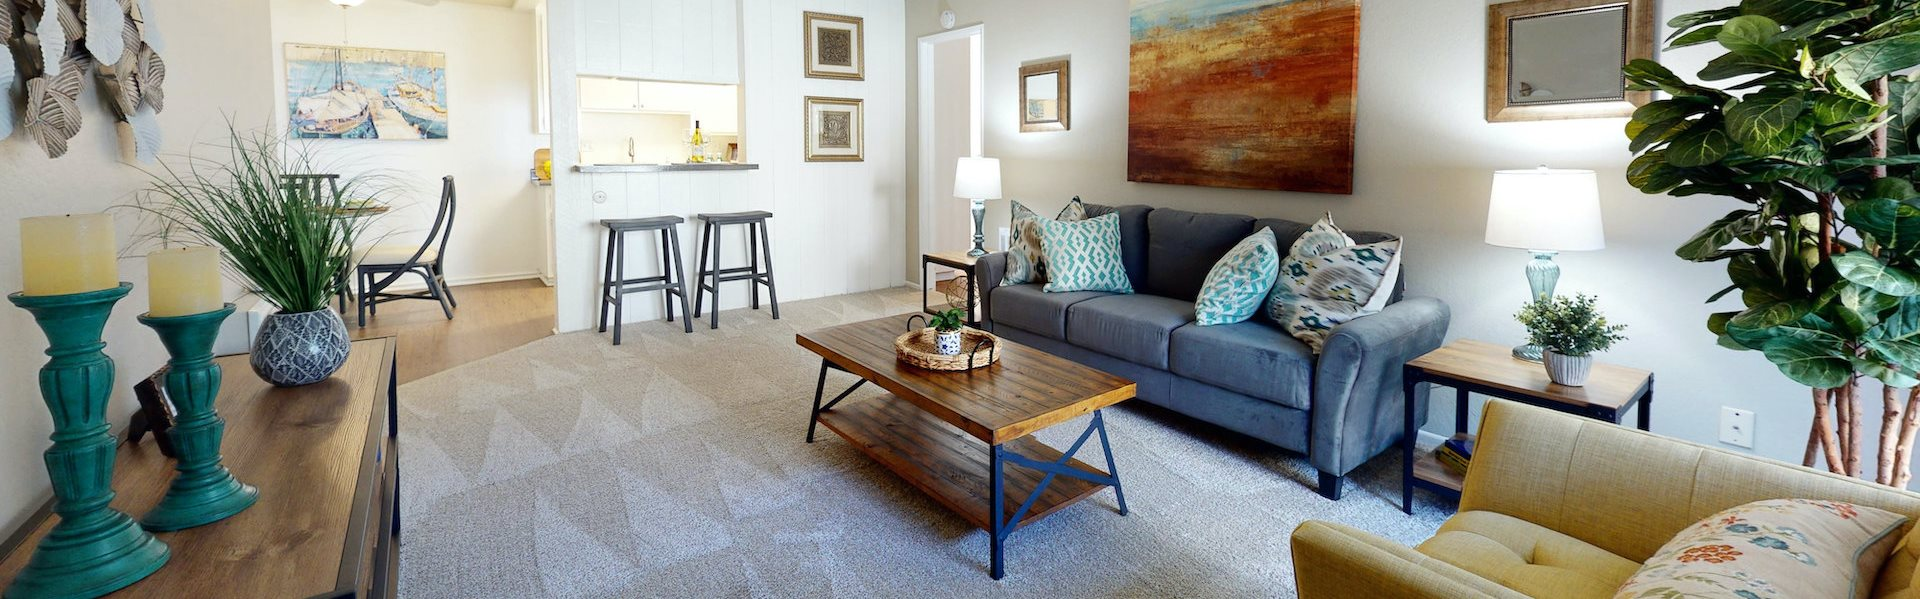 Newport Village Apartments | Costa Mesa, CA | Living Room